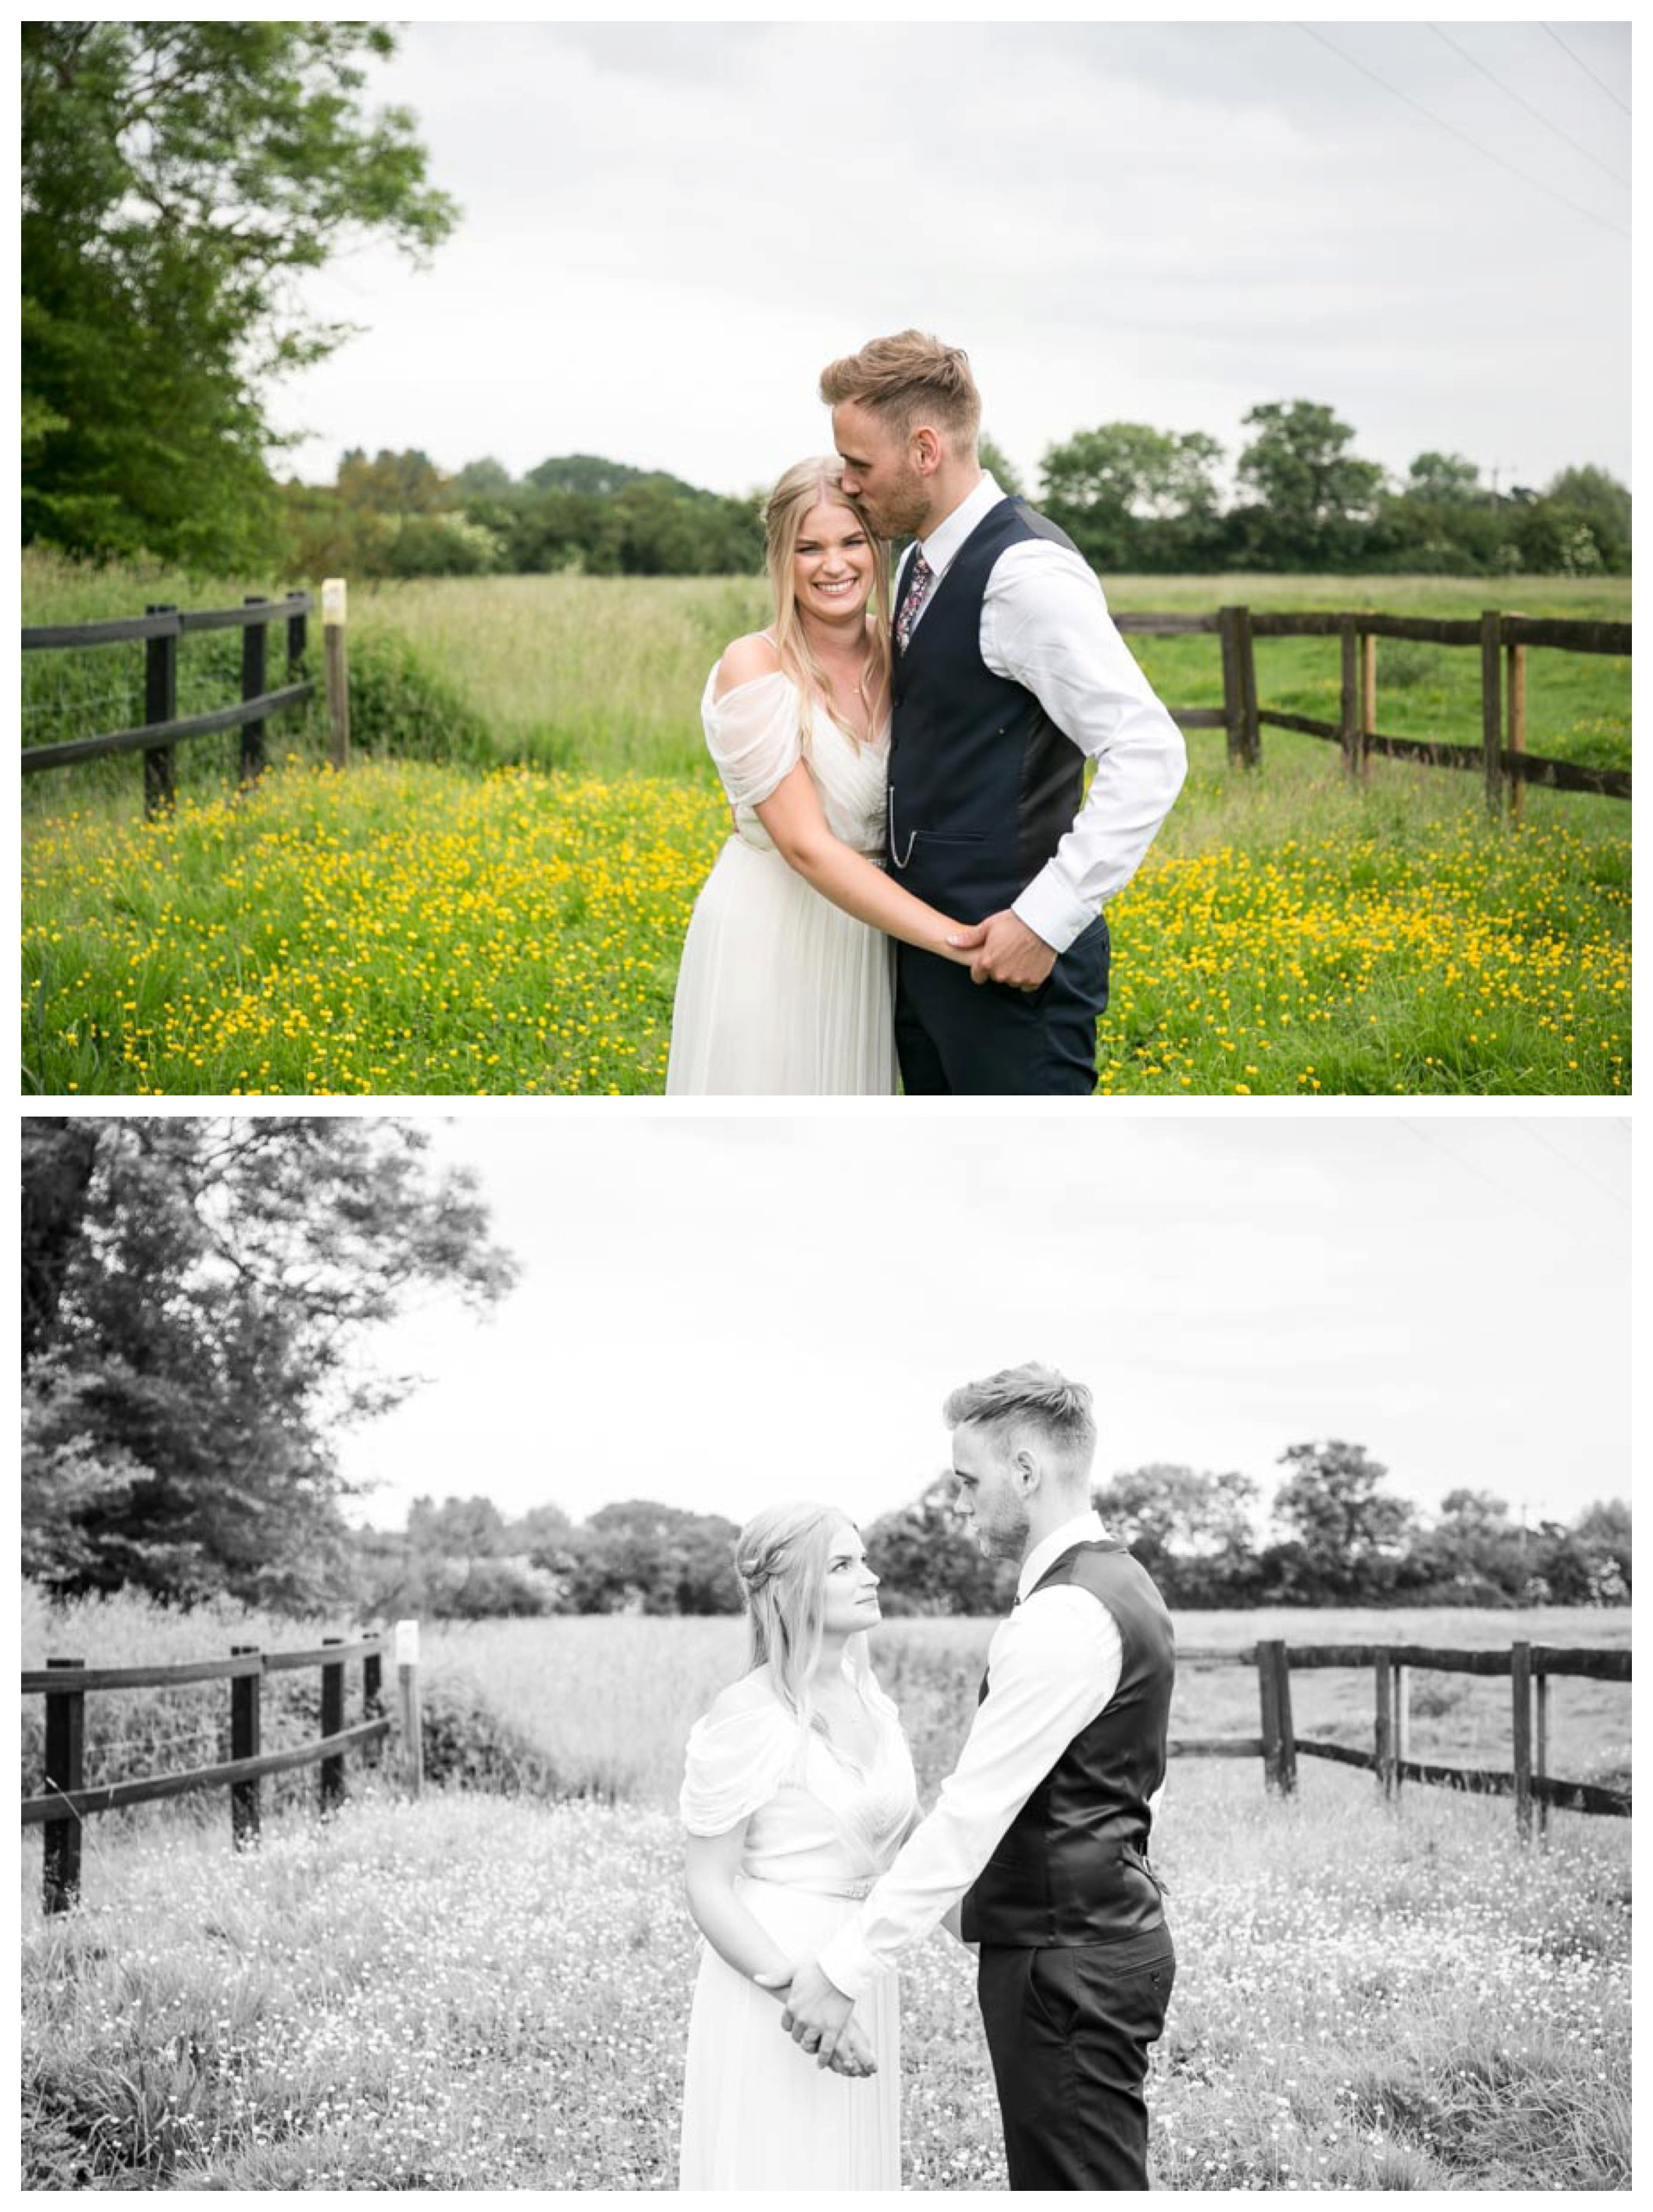 bride and groom stand in field of yellow flowers